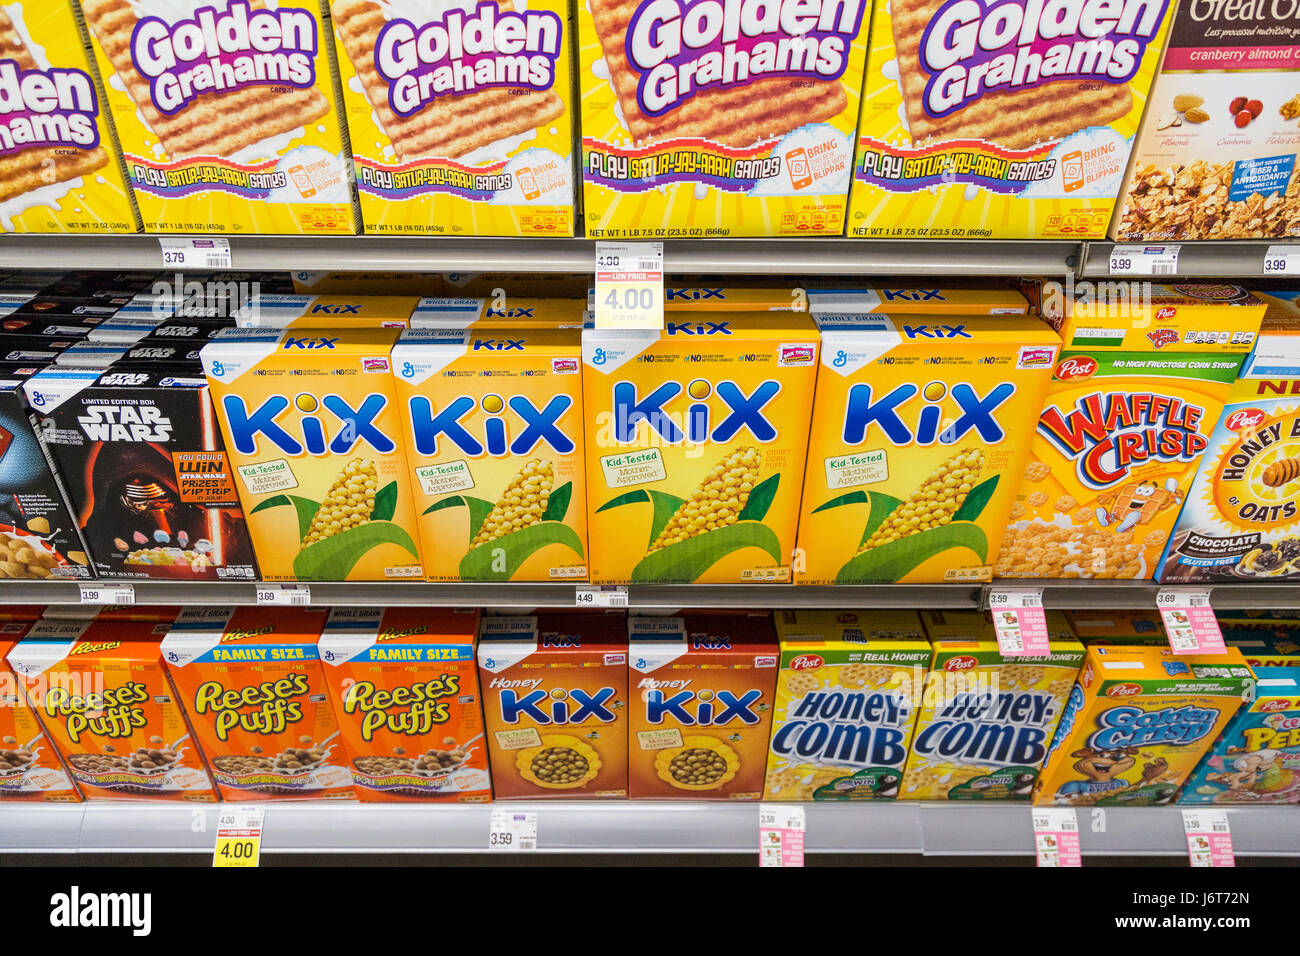 boxes of breakfast cereal on shelves at a grocery store - Stock Image